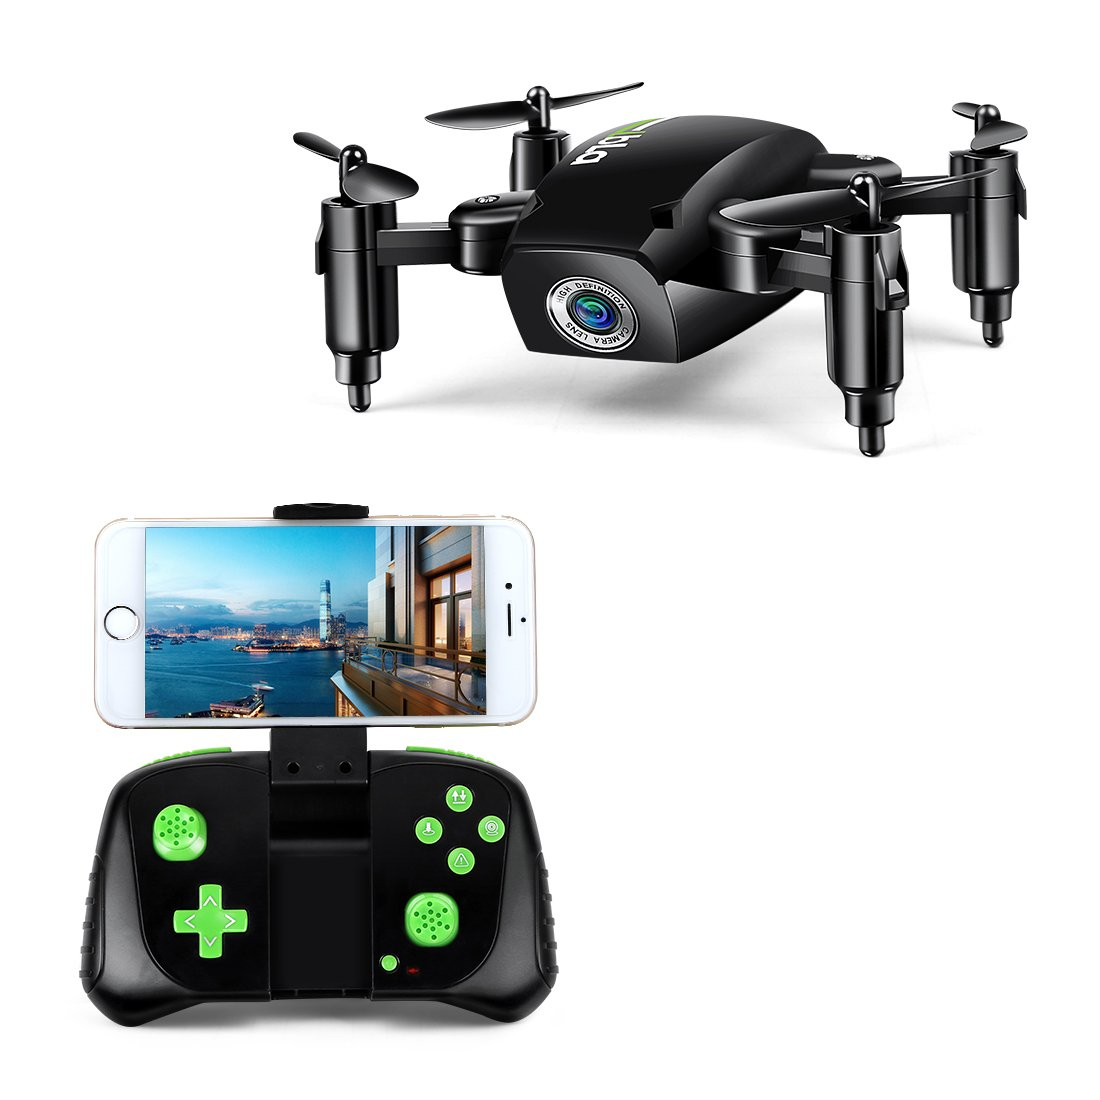 LBLA Mini Foldable RC Drone, FPV 2.4Ghz 6-Axis Gyro Altitude Hold RC Quadcopter HD WiFi Camera